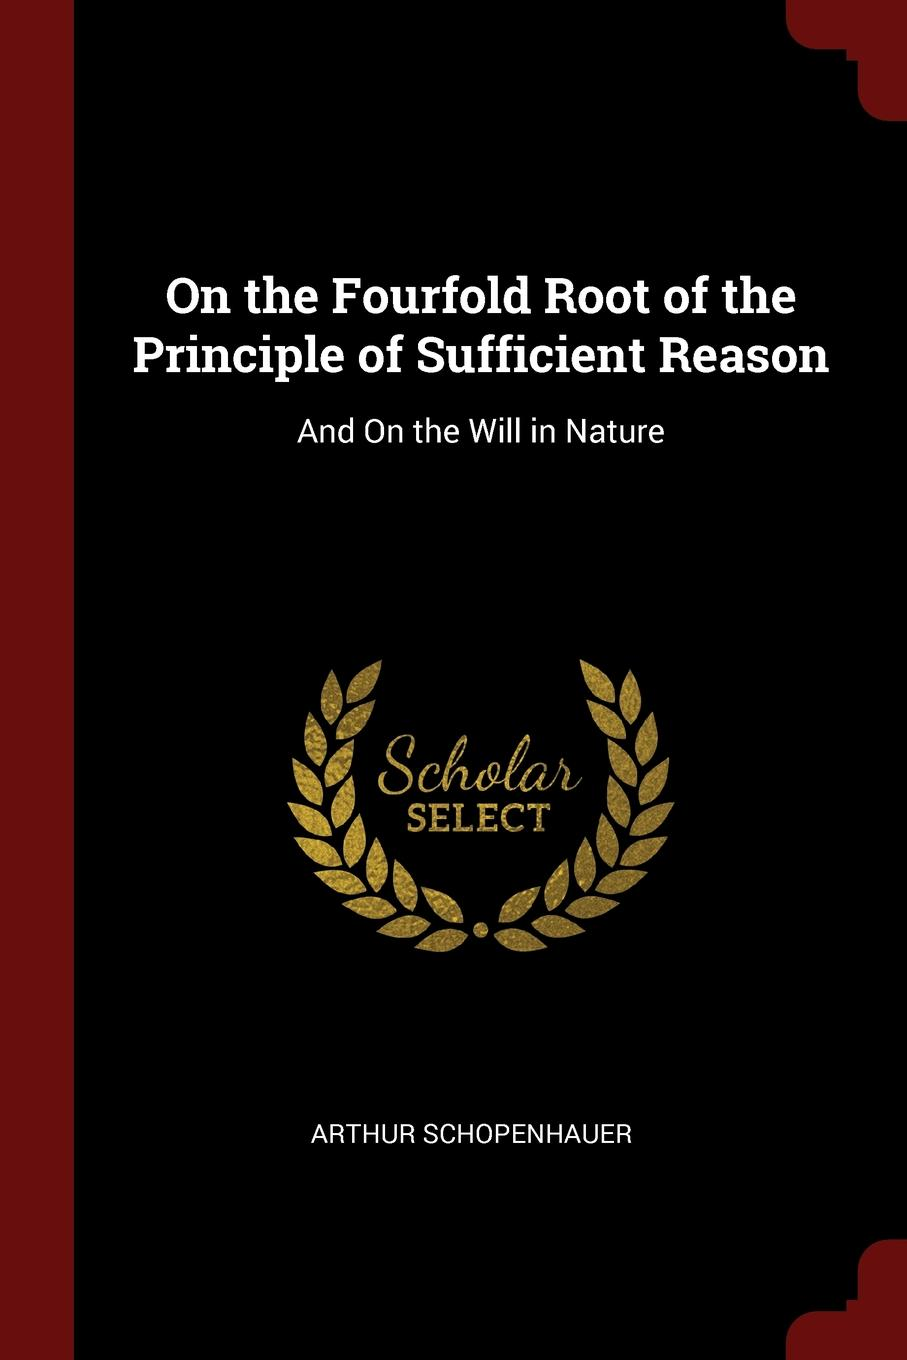 Артур Шопенгауэр On the Fourfold Root of the Principle of Sufficient Reason. And On the Will in Nature артур шопенгауэр the world as will and idea vol 2 of 3